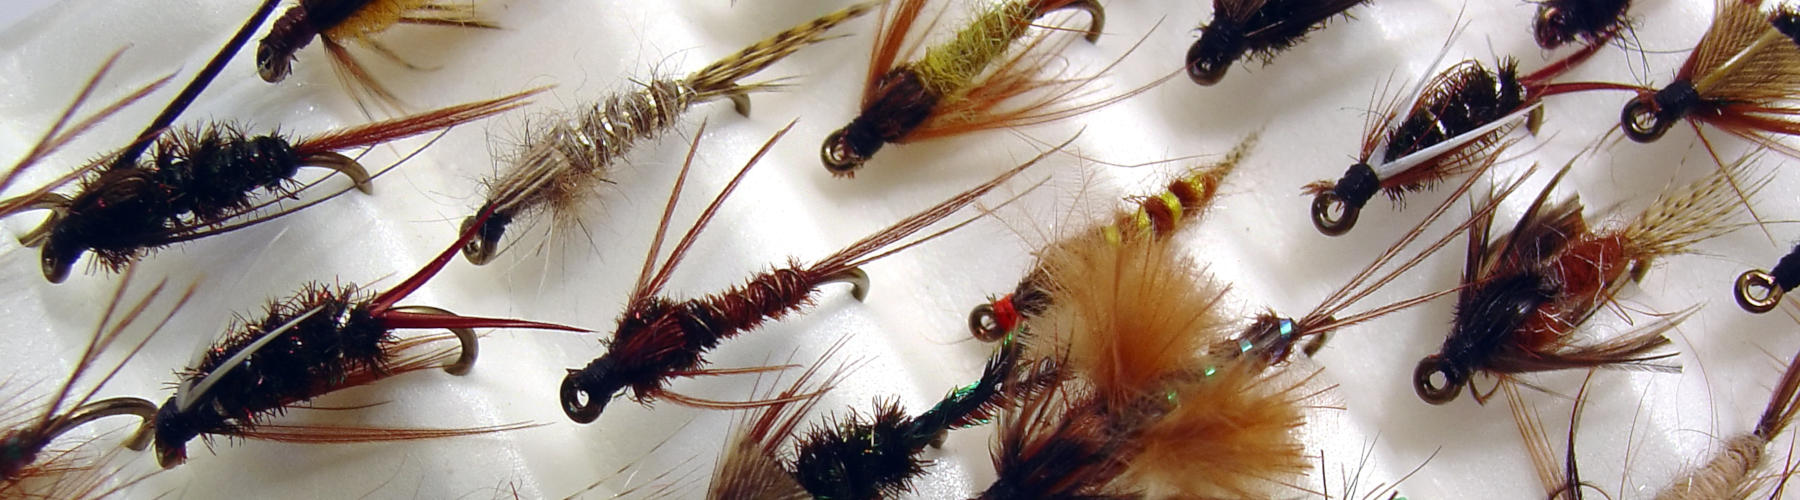 Flies and Fly Assortments